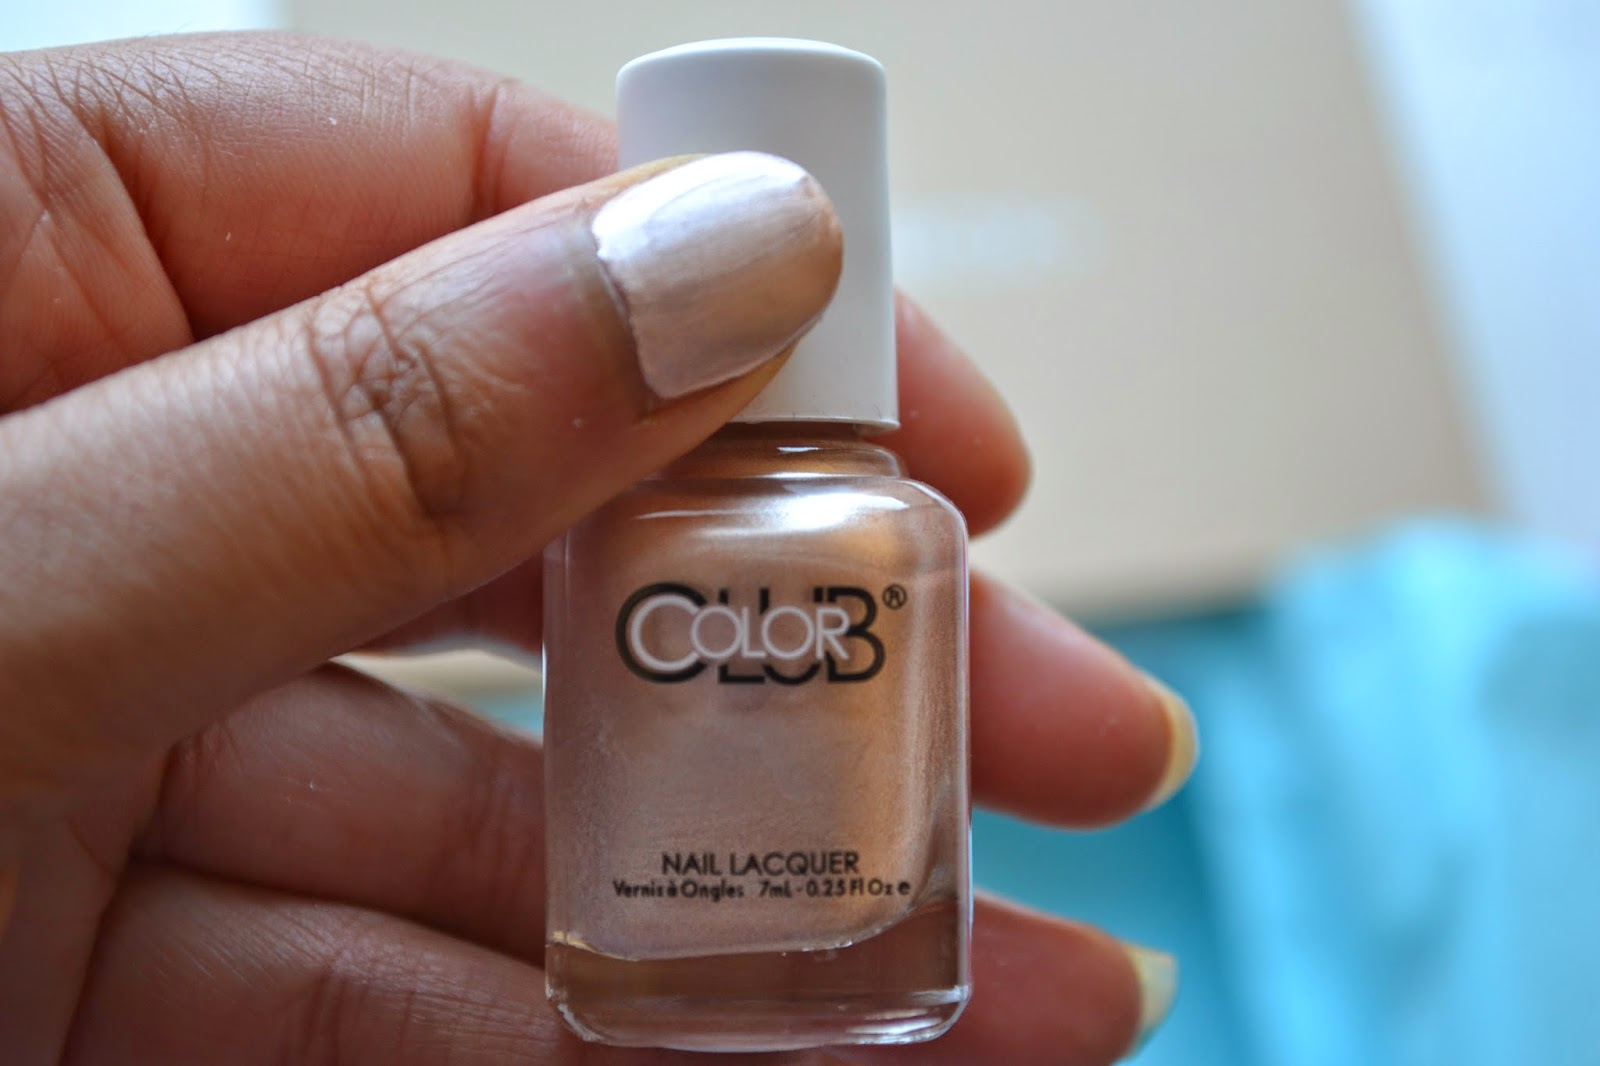 Color Club mini nail lacquer in the shade Gem Struck